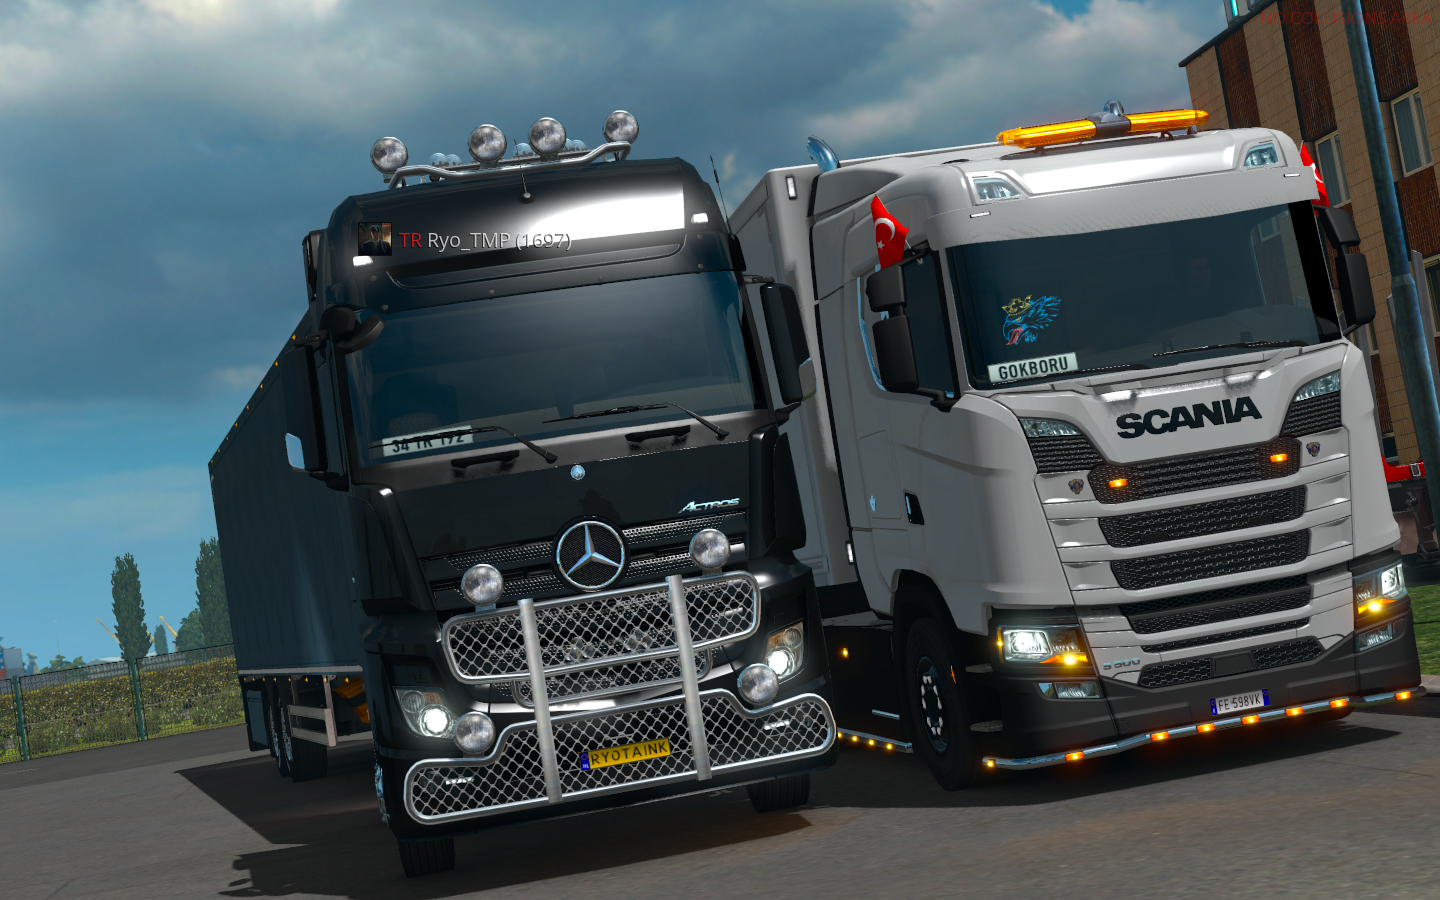 ets2_20190714_003201_00.png